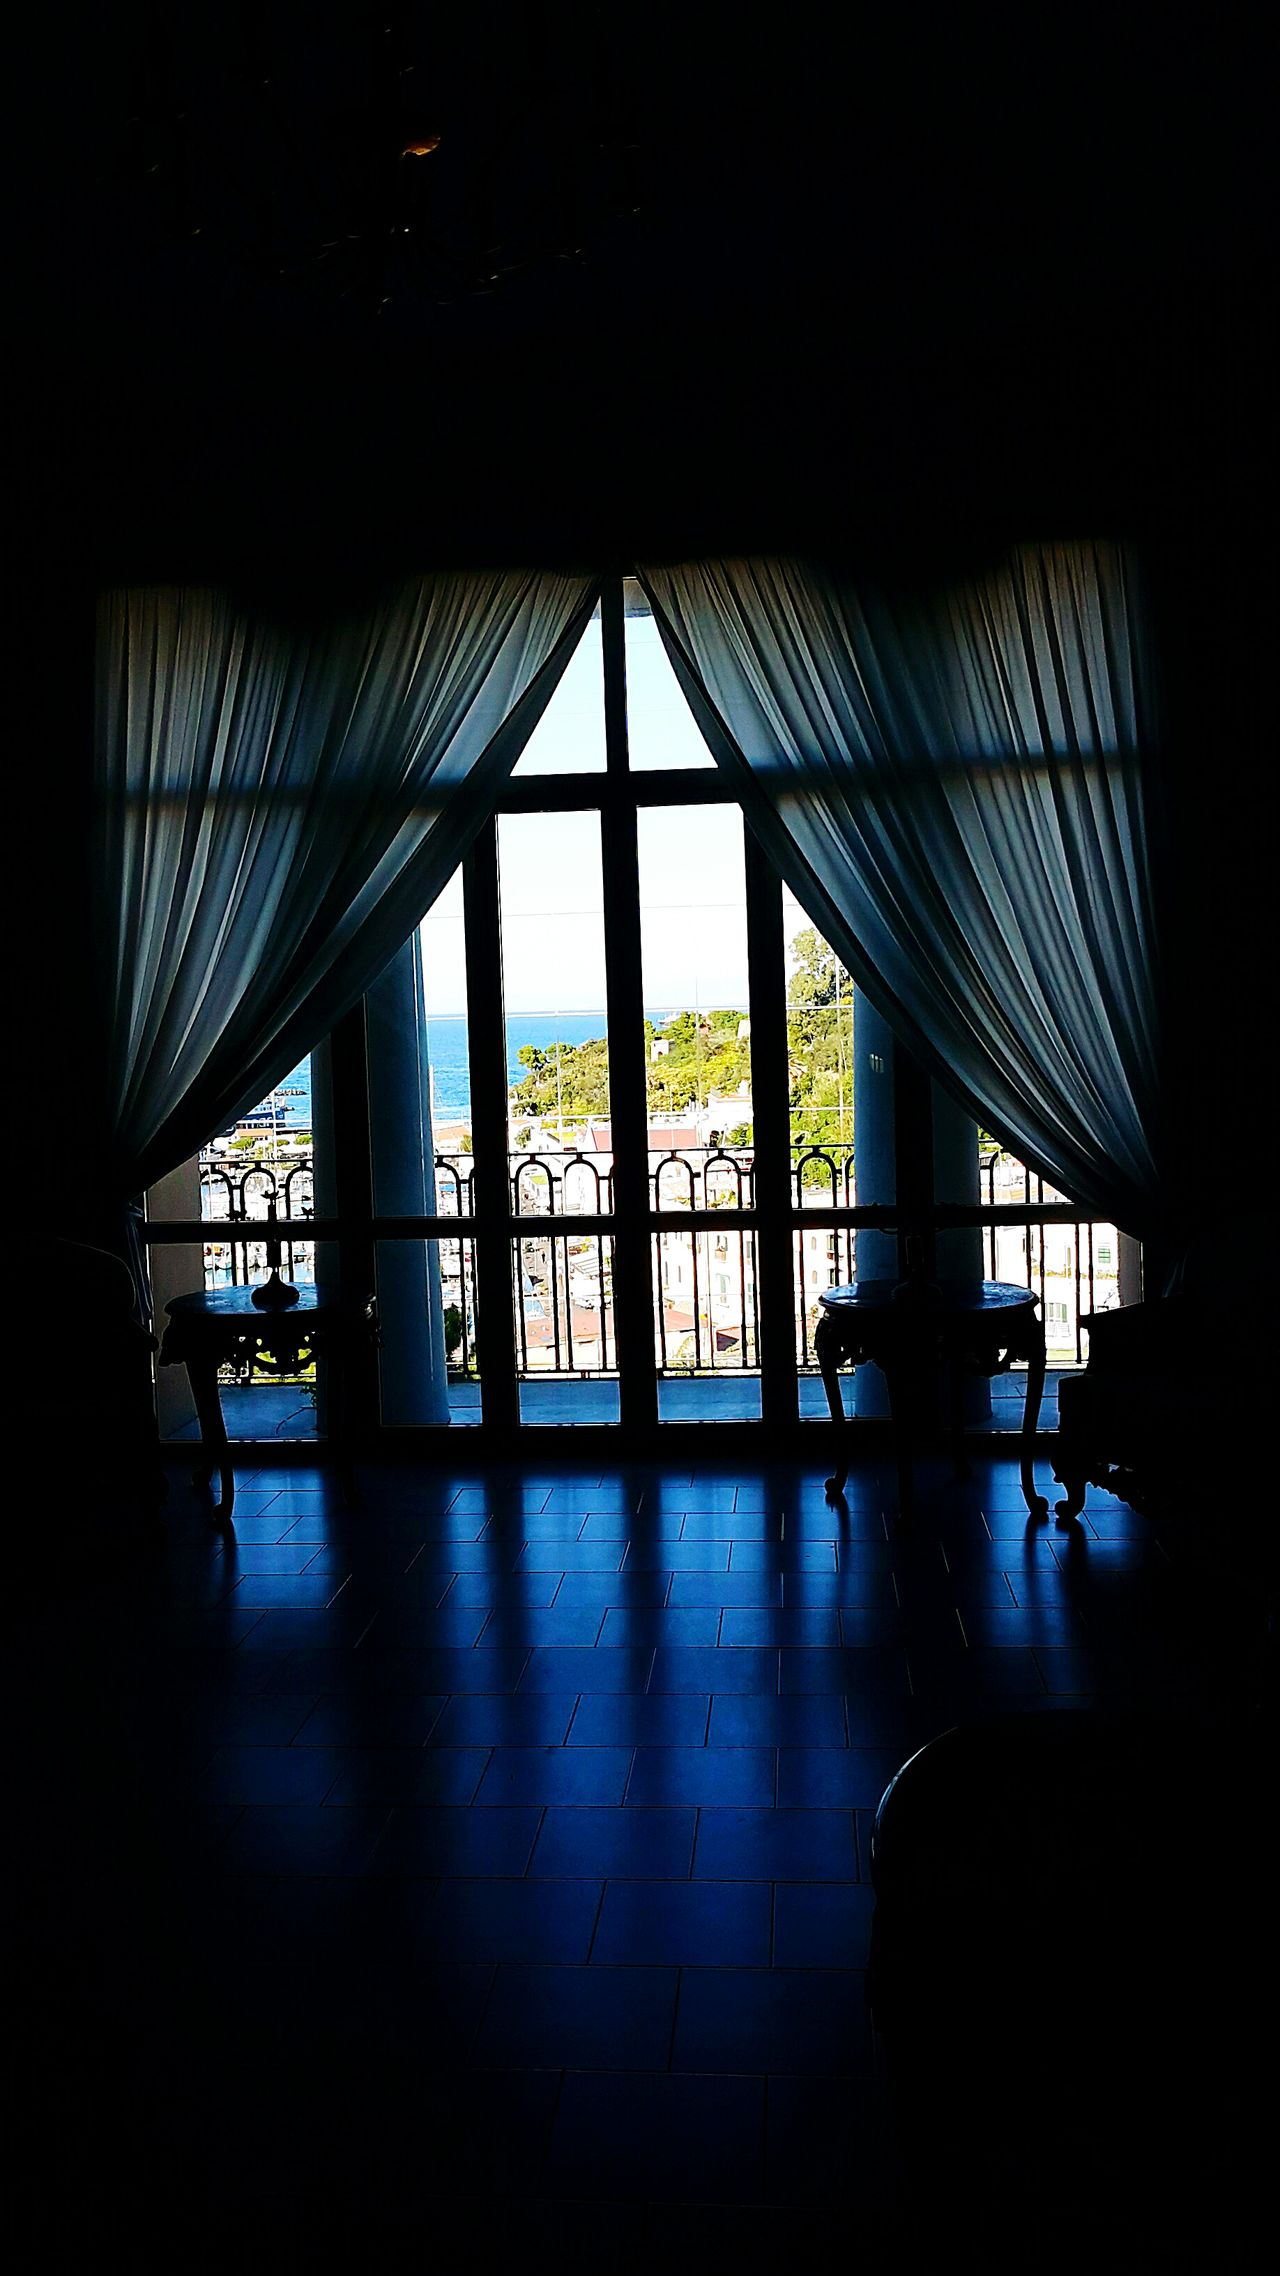 Indoors  Architecture Built Structure No People Fishermancottage Ischia Palace Royalpalace Sea Sea And Sky Seaside Room With A View Roomwithaview Roomview Room Lights Bayview Seaside_collection Sea_collection Sea View BlackWidow Lights And Shadows Light In The Darkness Light And Shadow Bridge - Man Made Structure Decoration